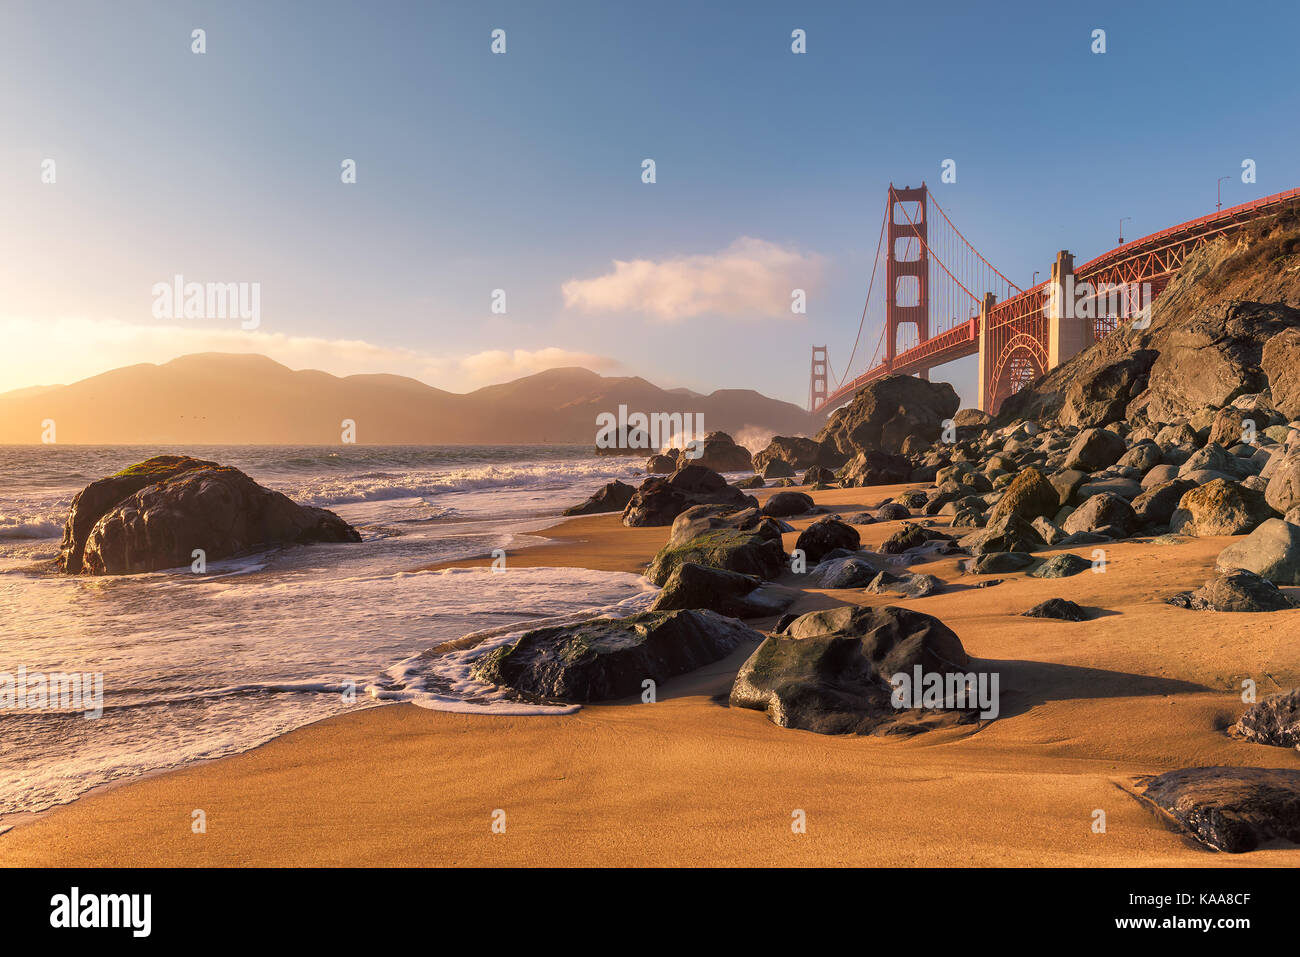 Golden Gate Bridge à partir de la plage de san francisco au coucher du soleil. Photo Stock